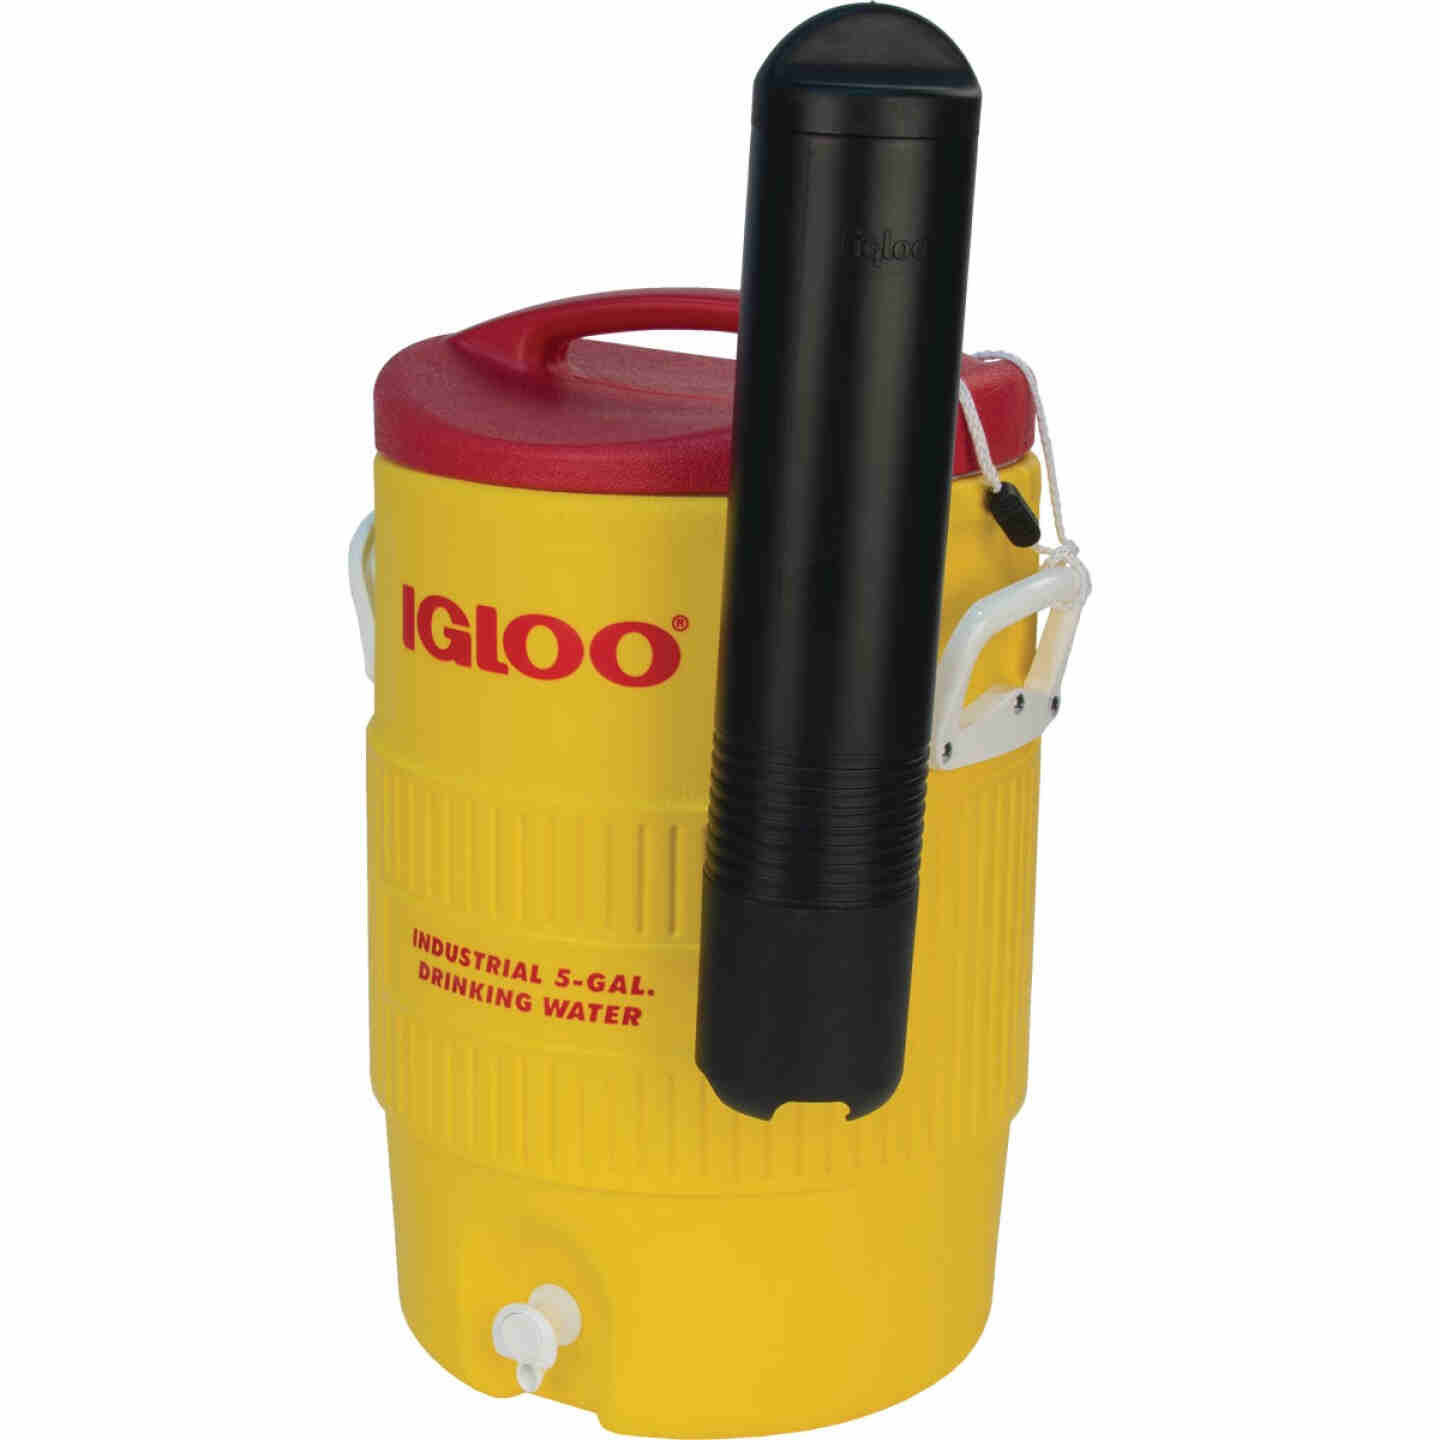 Igloo 5 Gal. Yellow Industrial Water Jug with Cup Dispenser Image 2